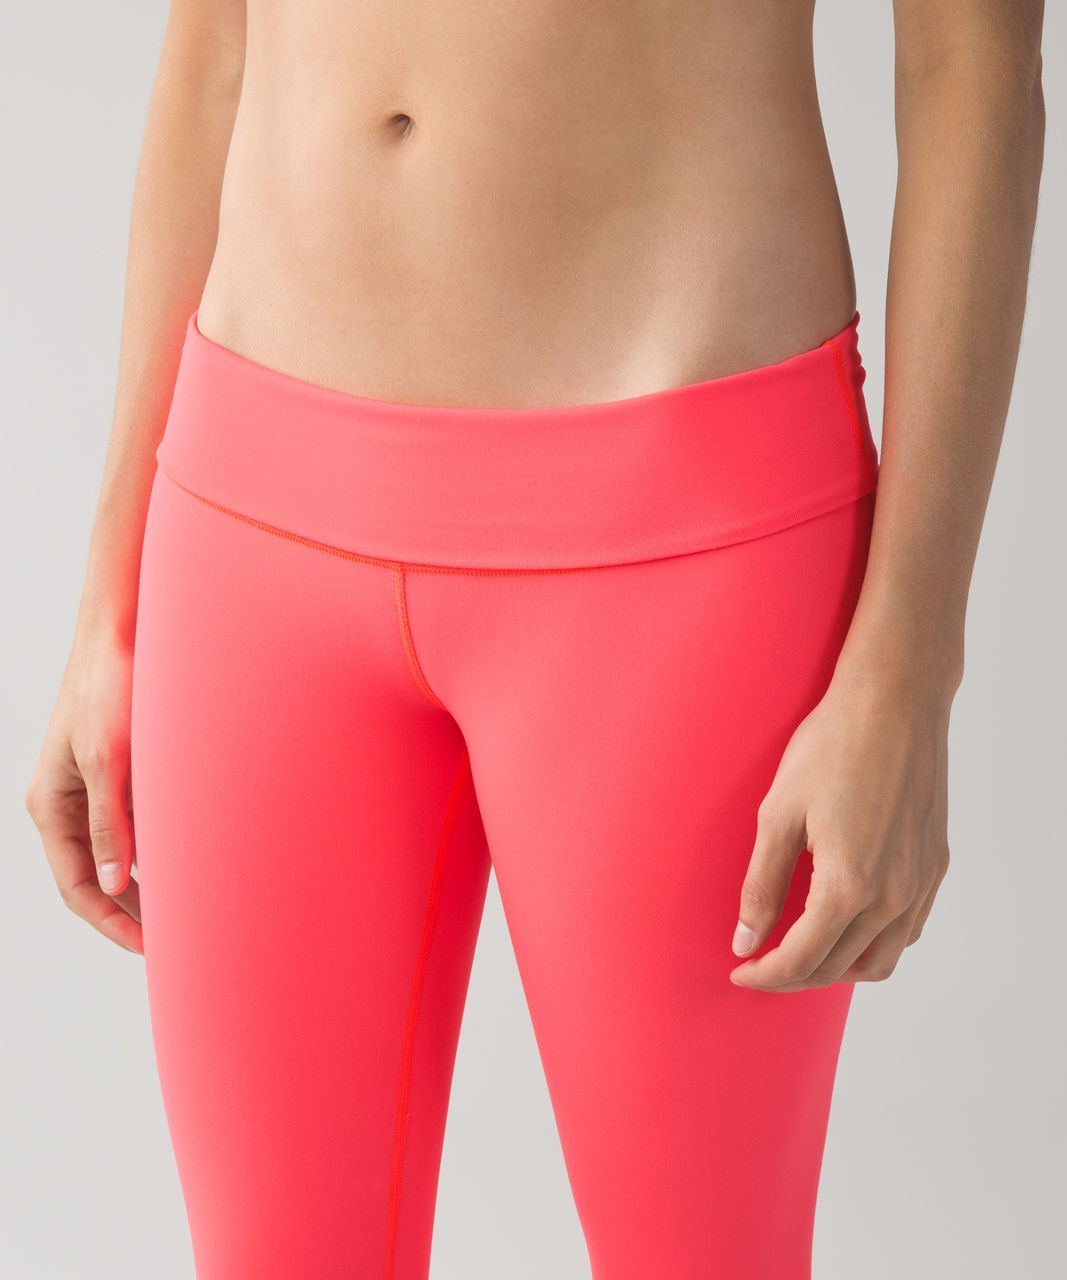 Lululemon Wunder Under Crop II *Full-On Luon (Roll Down) - Electric Coral